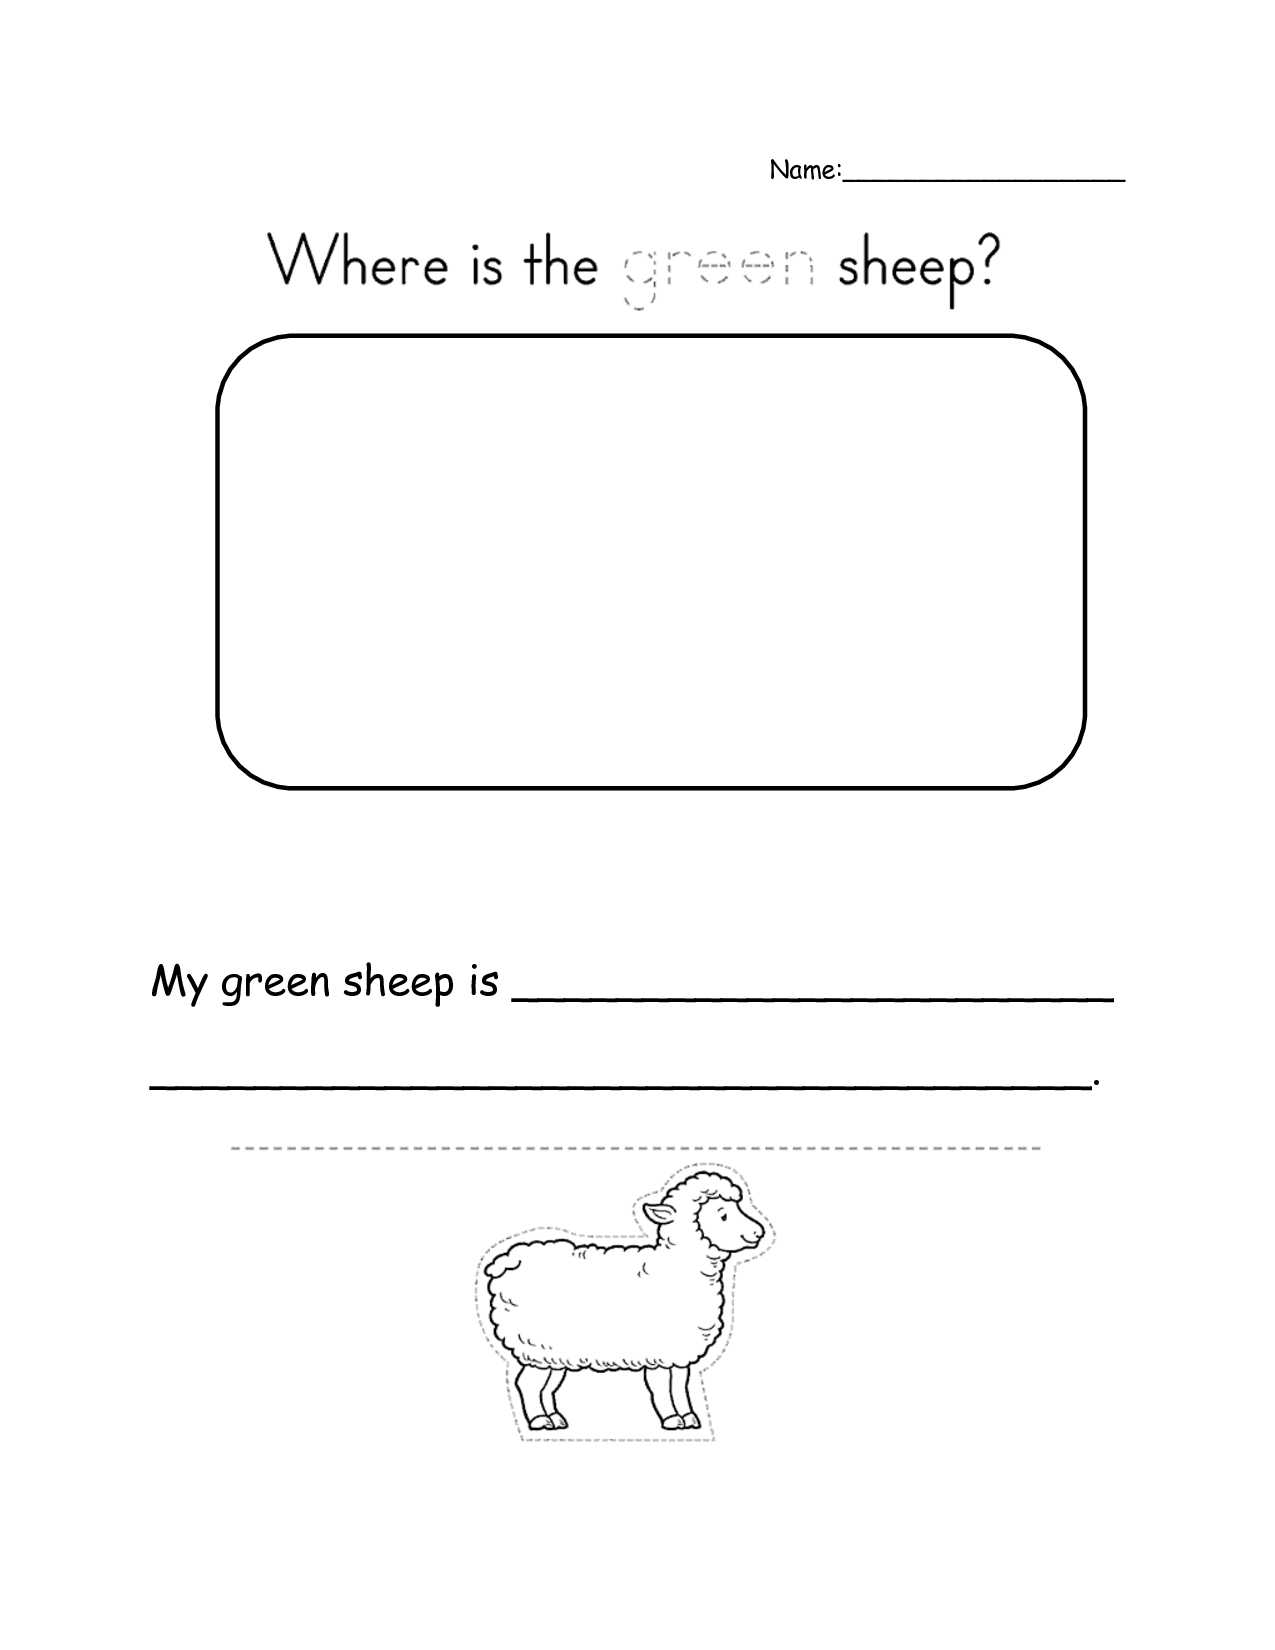 Where Is The Green Sheep Worksheets